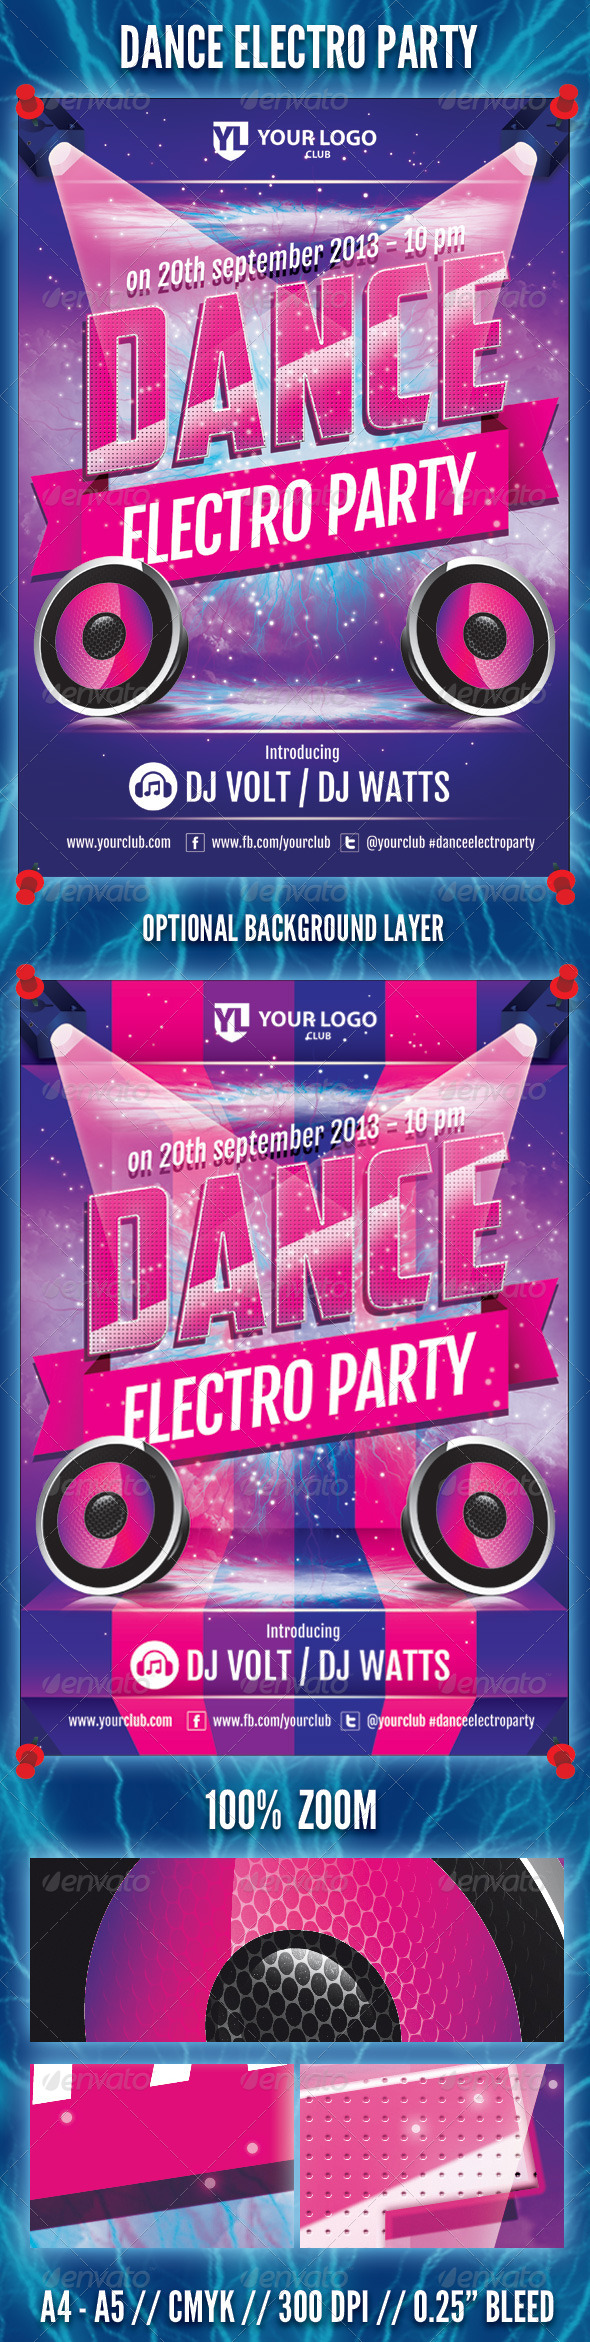 GraphicRiver Dance Electro Party Flyer 5430153